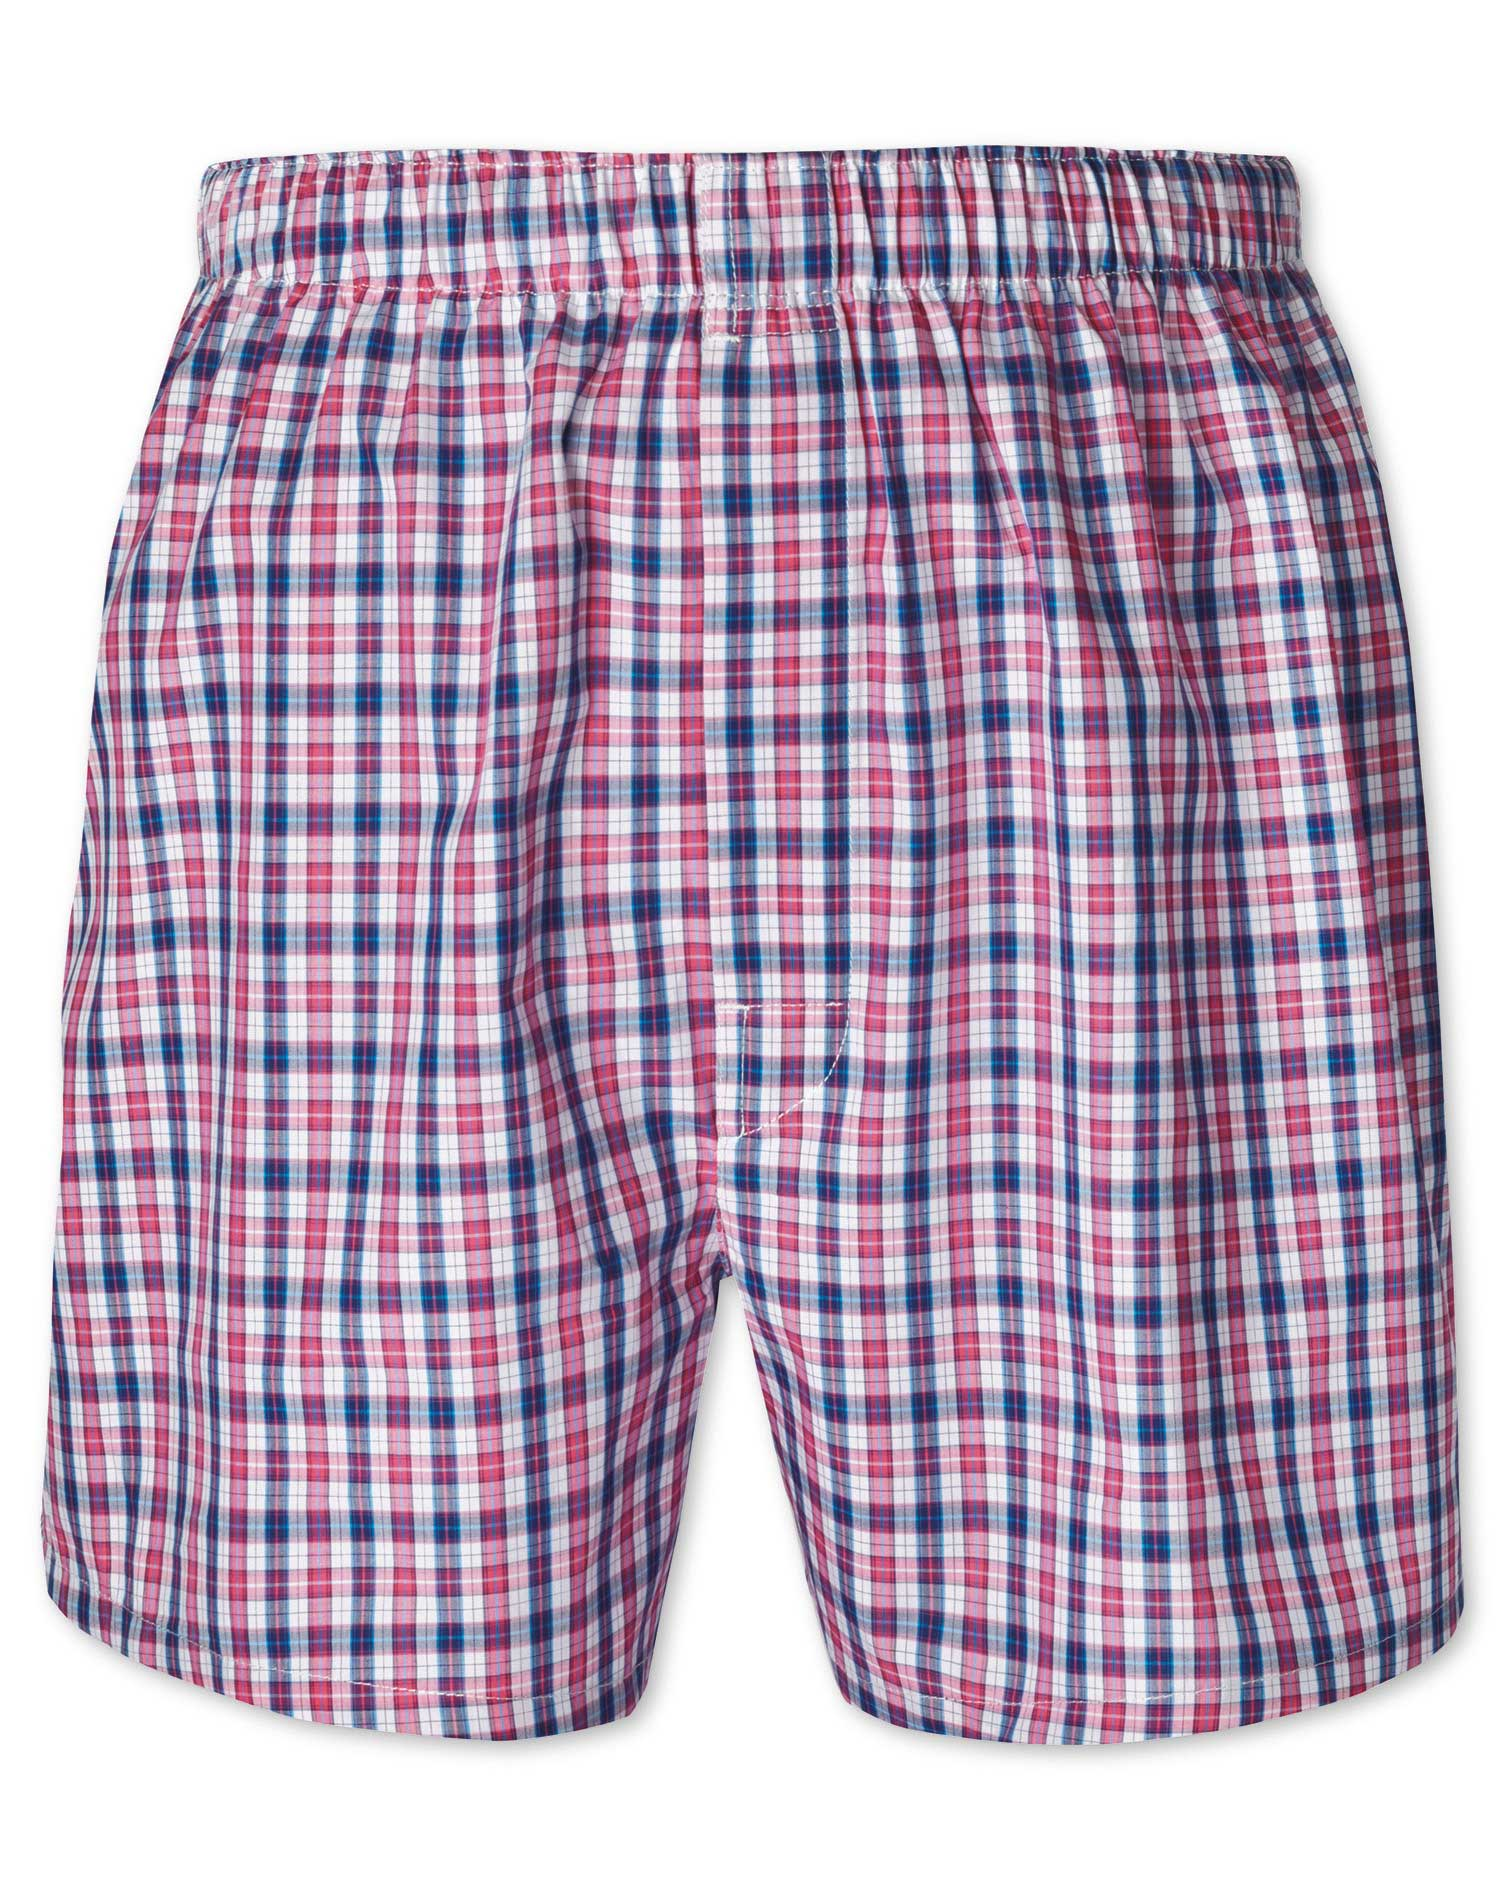 Pink Check Woven Boxers Size XXL by Charles Tyrwhitt